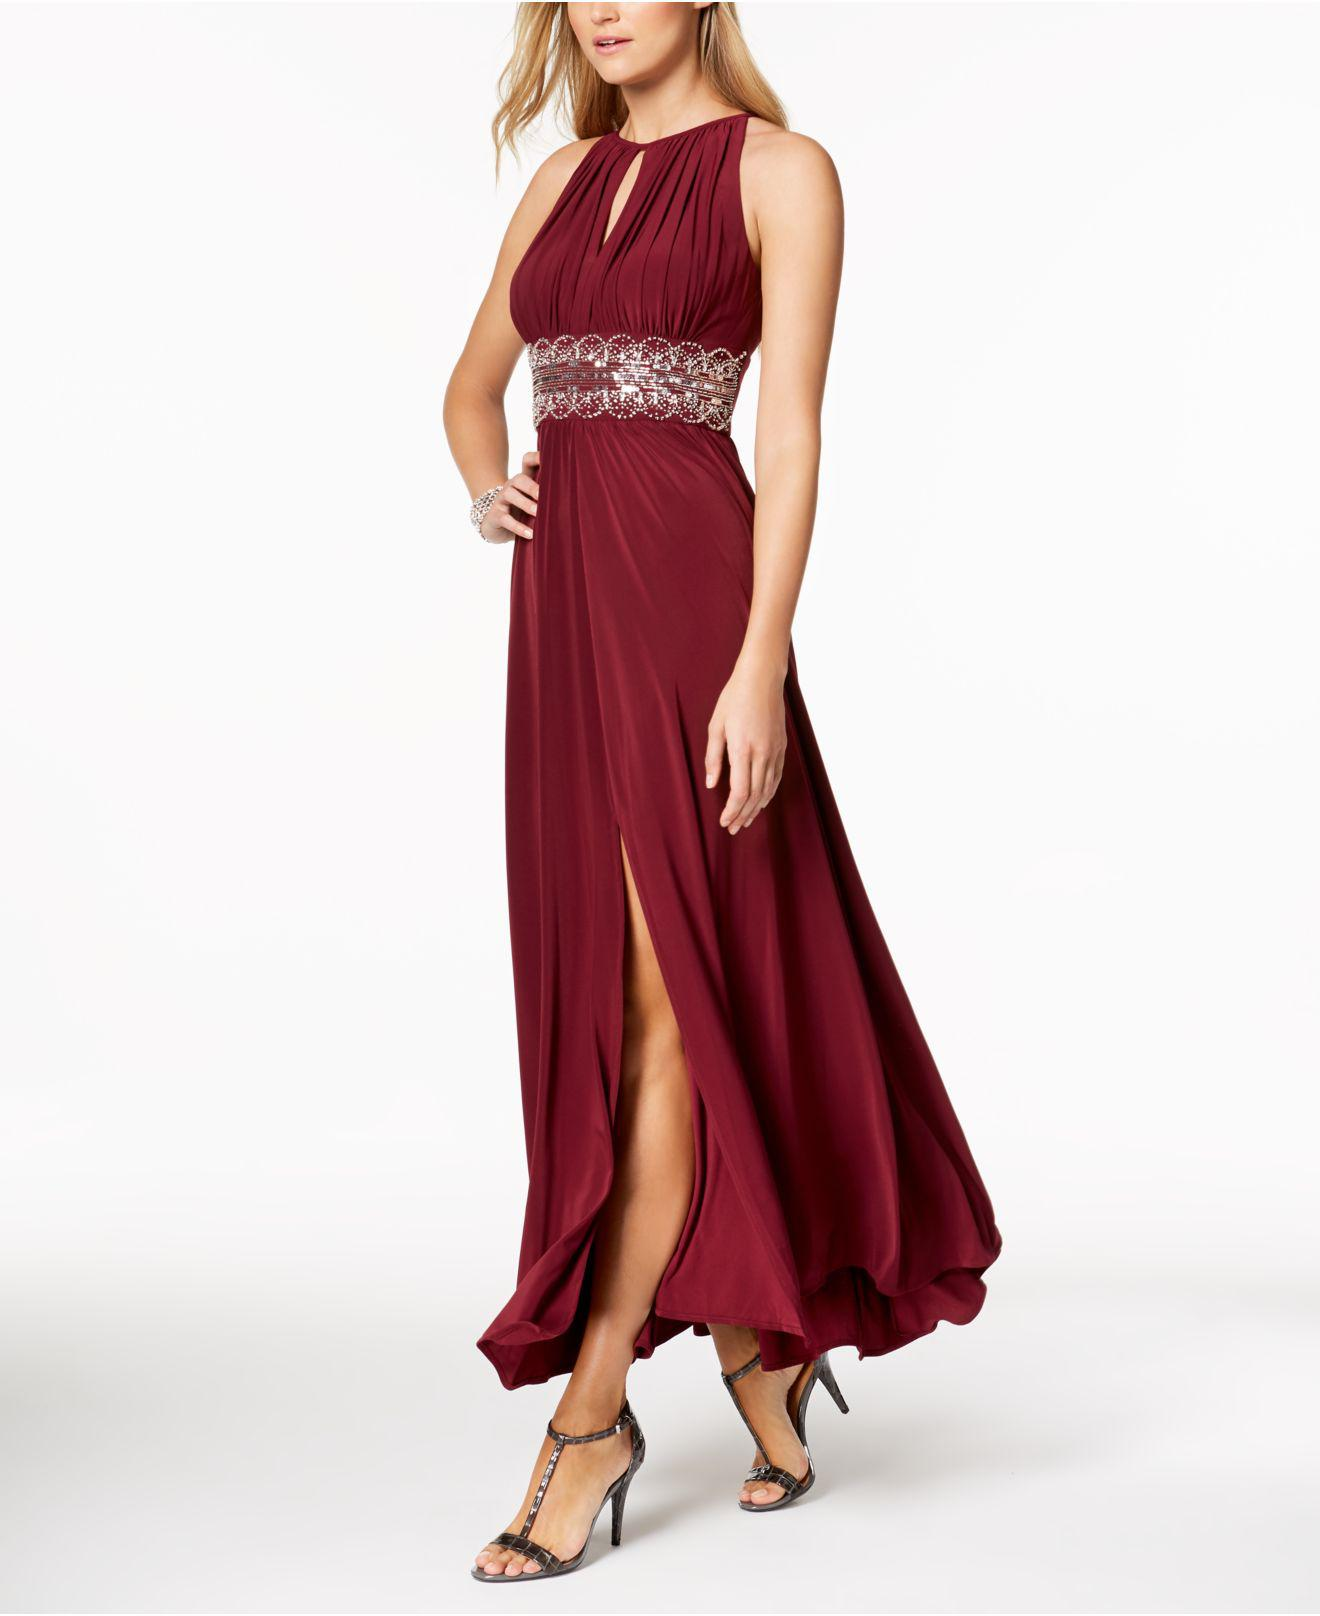 Lyst - R & M Richards R&m Richards Petite Sleeveless Beaded Gown in Red